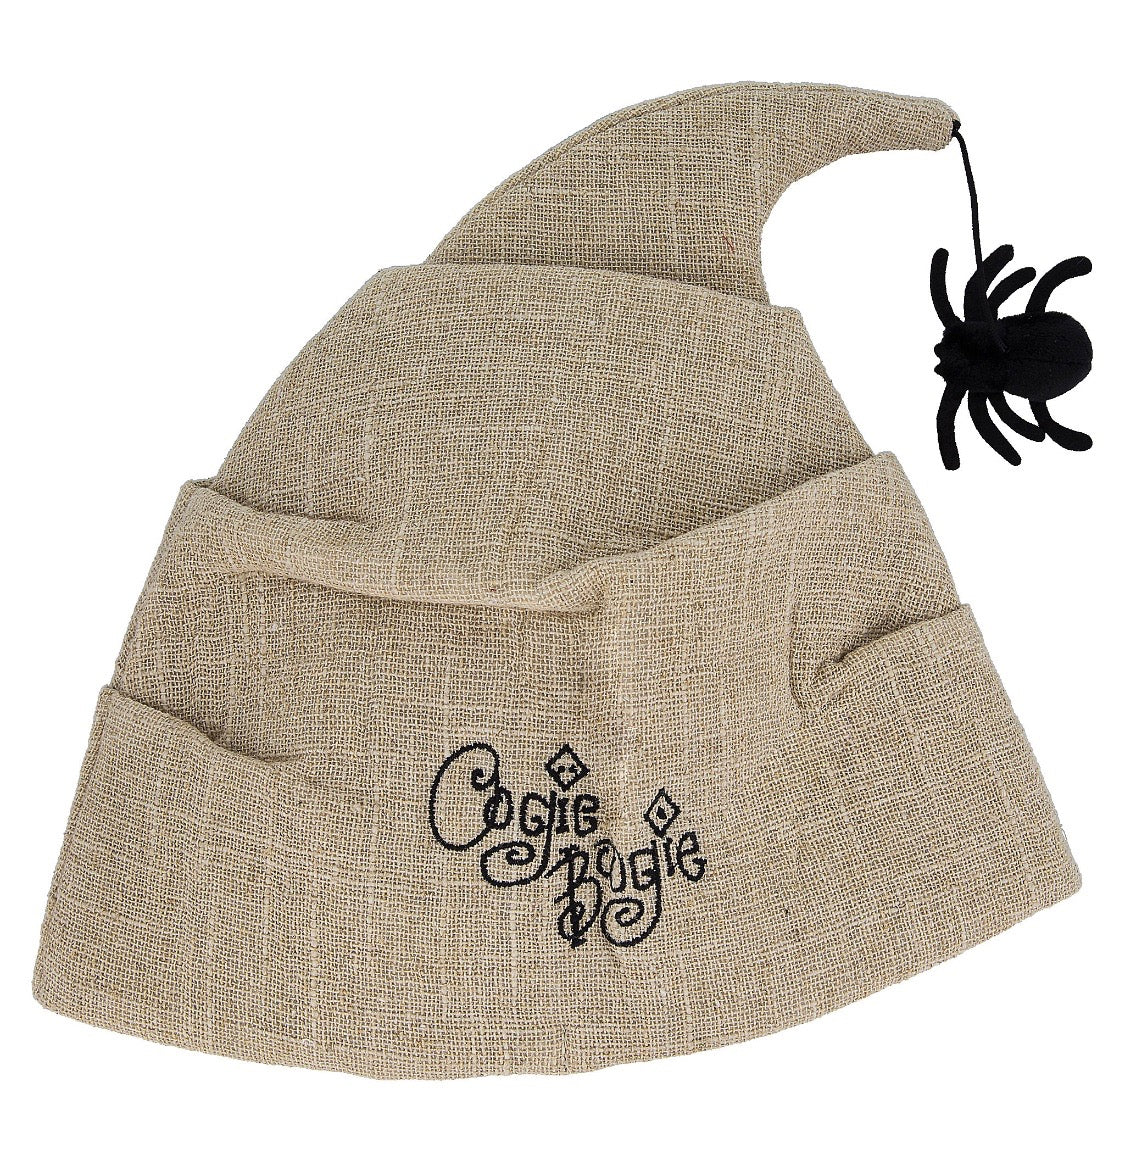 d56c021a7c676 disney the nightmare before christmas oogie boogie novelty hat new with tags